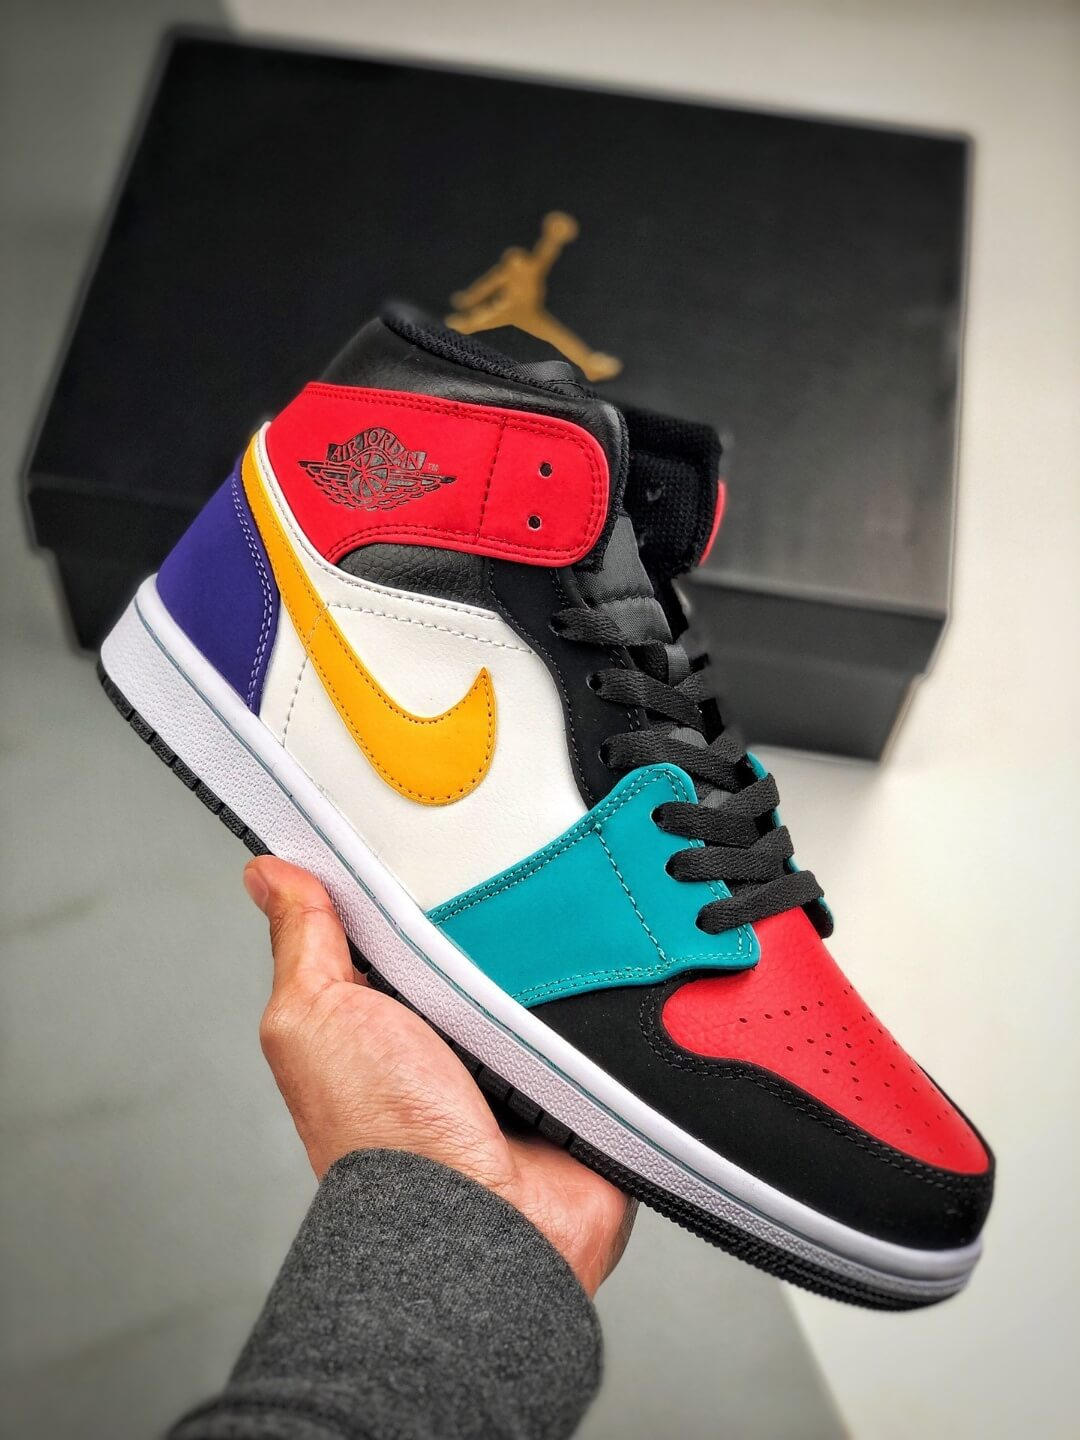 falta patrón Australia  The Air Jordan 1 Mid 'Multi-Color' Sneaker Red and Red on Toe and Collar  Orange Swoosh Nike Logo Repsneakers – The Quality Replica Sneakers Supplier  in China